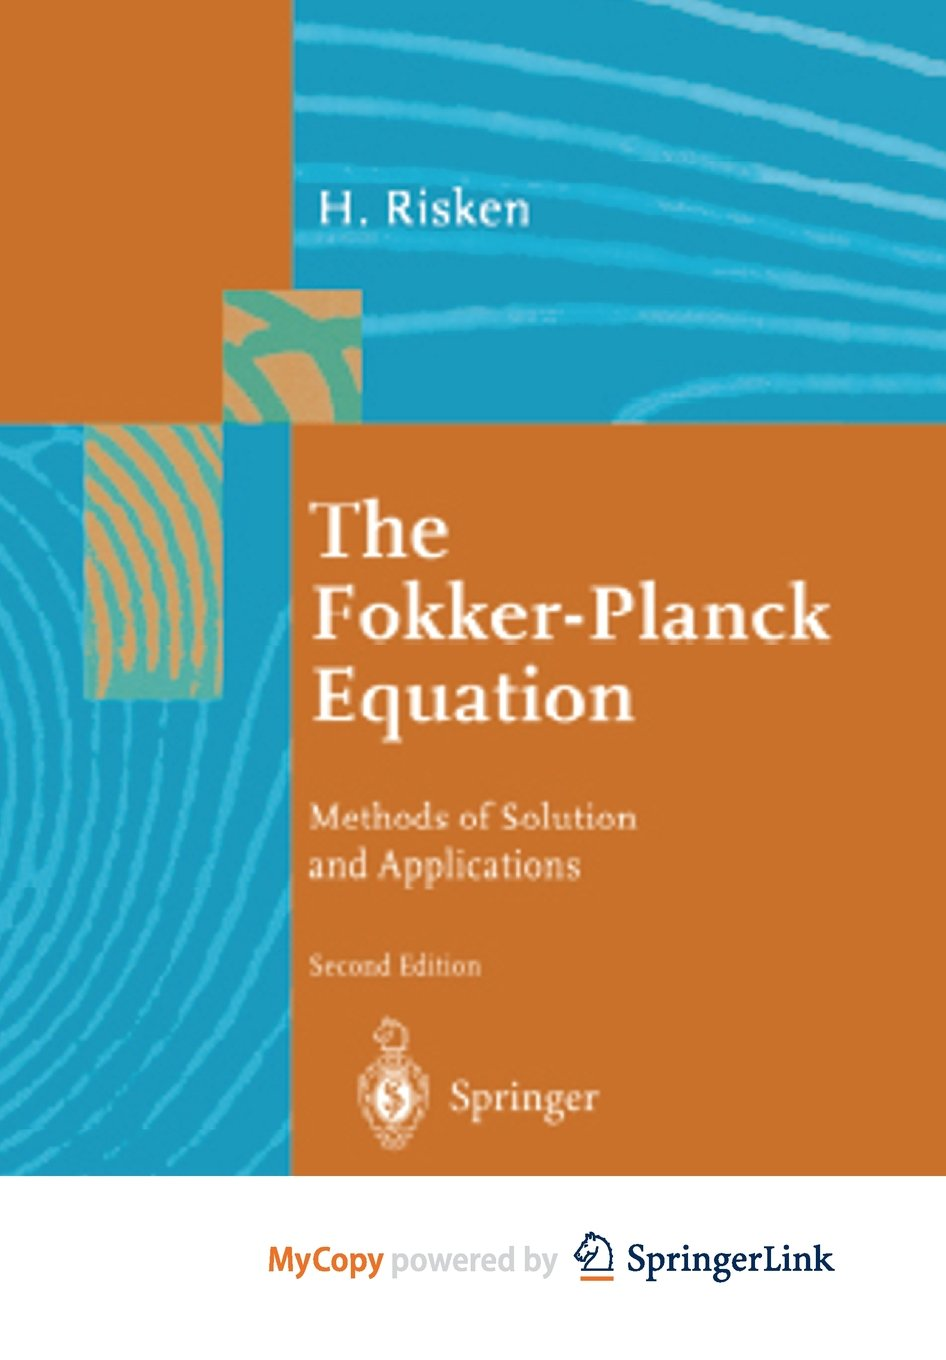 The Fokker-Planck equation: methods of solution and applications